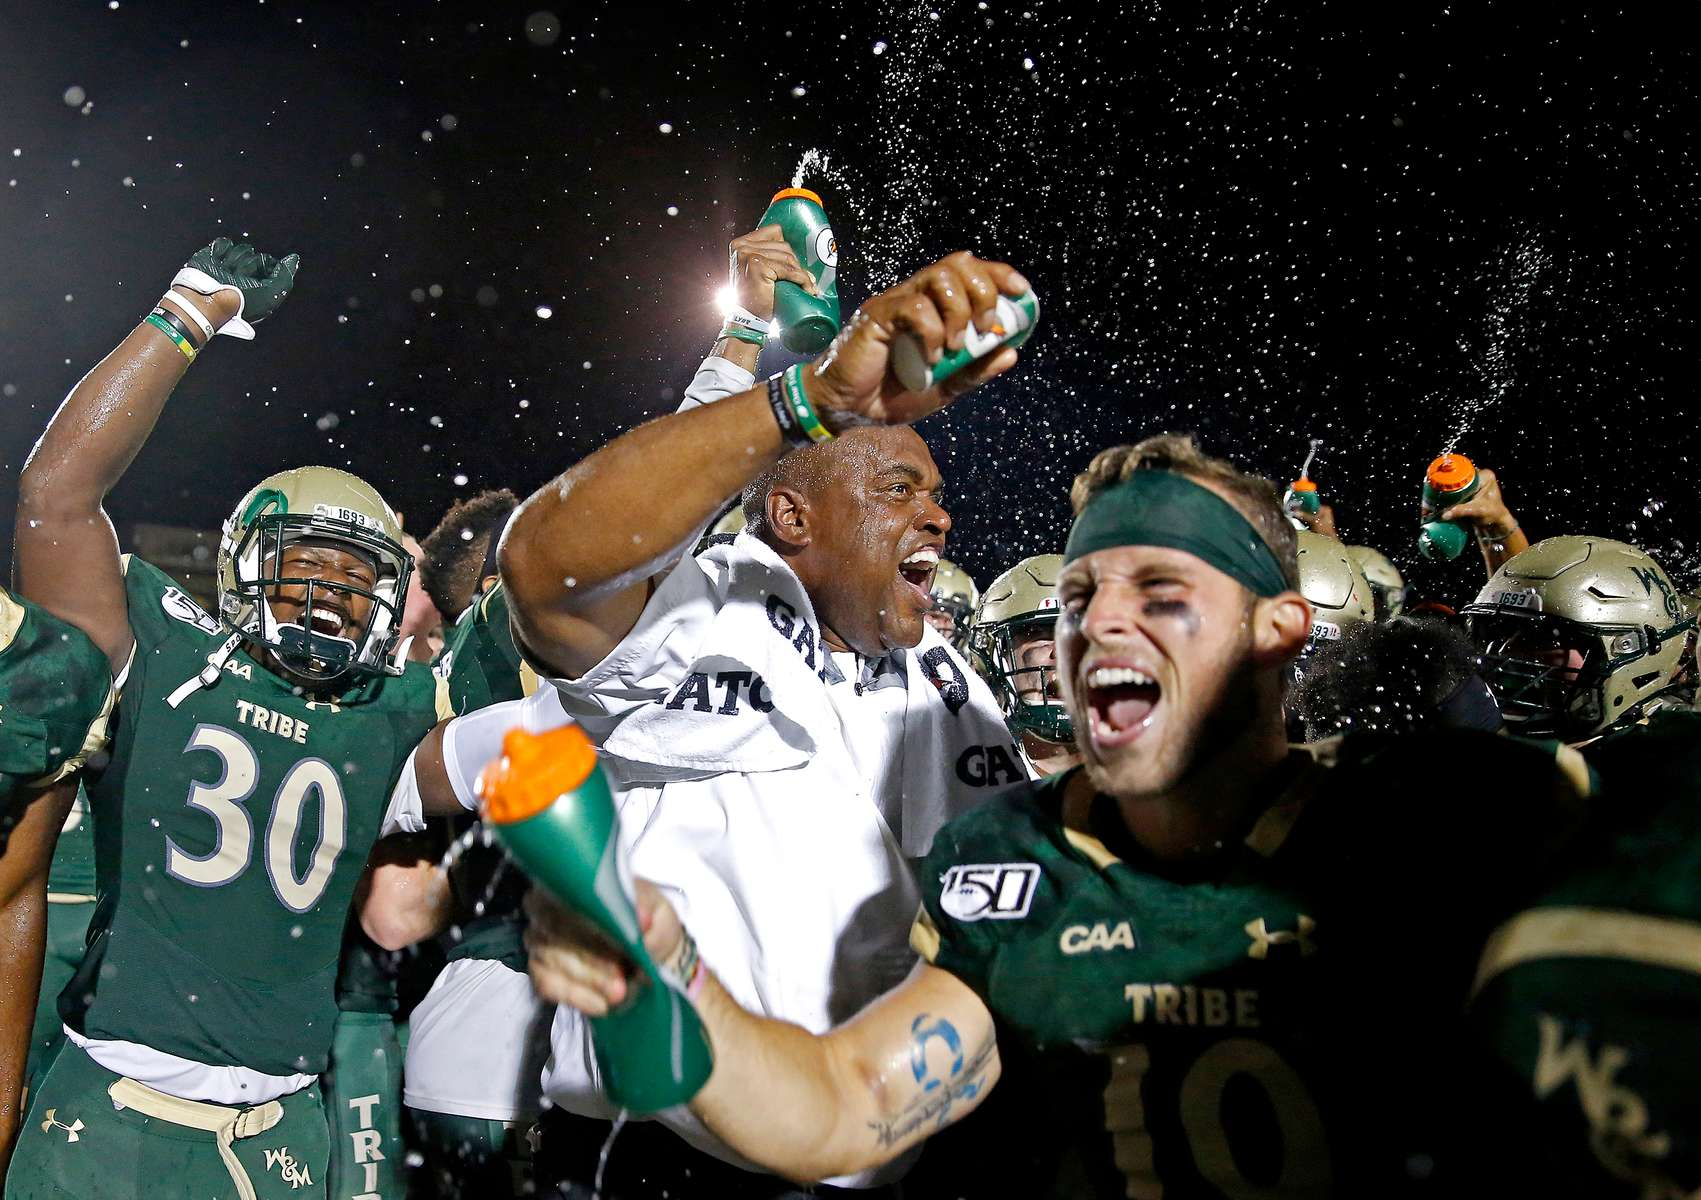 William and Mary head football coach Mike London, center, celebrates with his players after defeating Lafayette 30-17 during Saturday's football game at Zable Stadium August 31, 2019.